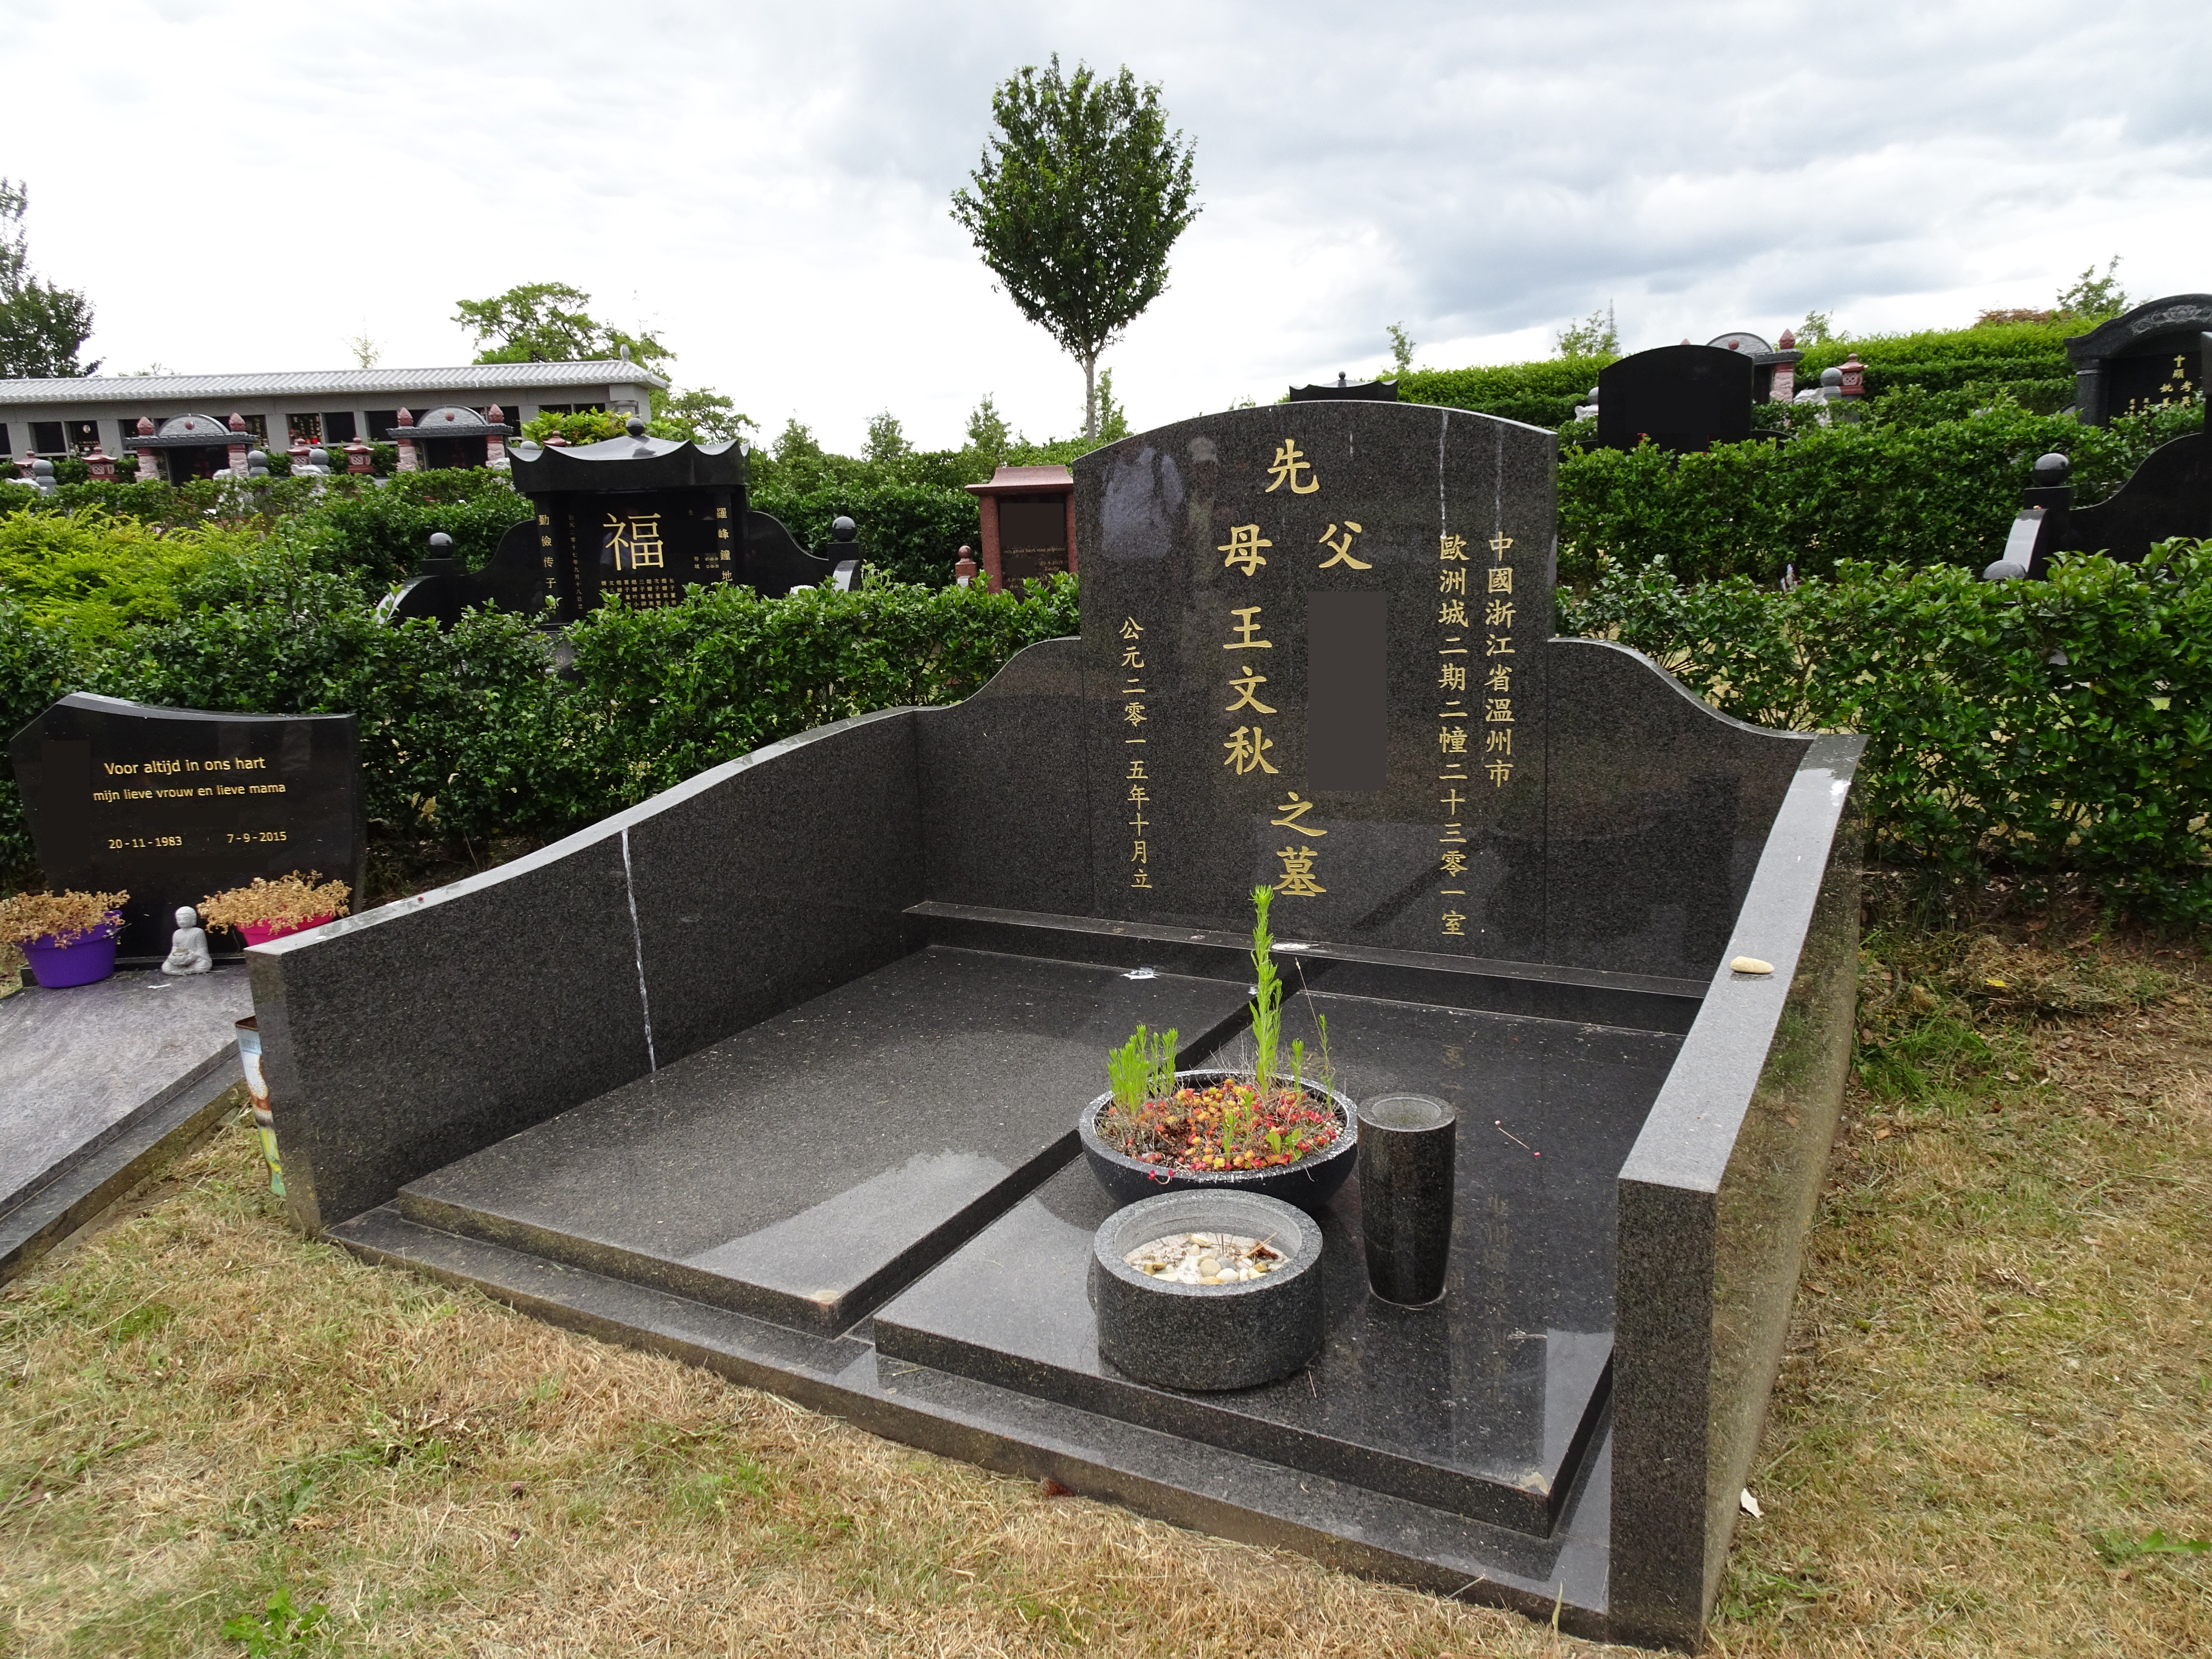 Grave at Chinese Cemetery in Kranenburg, Zwolle, the Netherlands